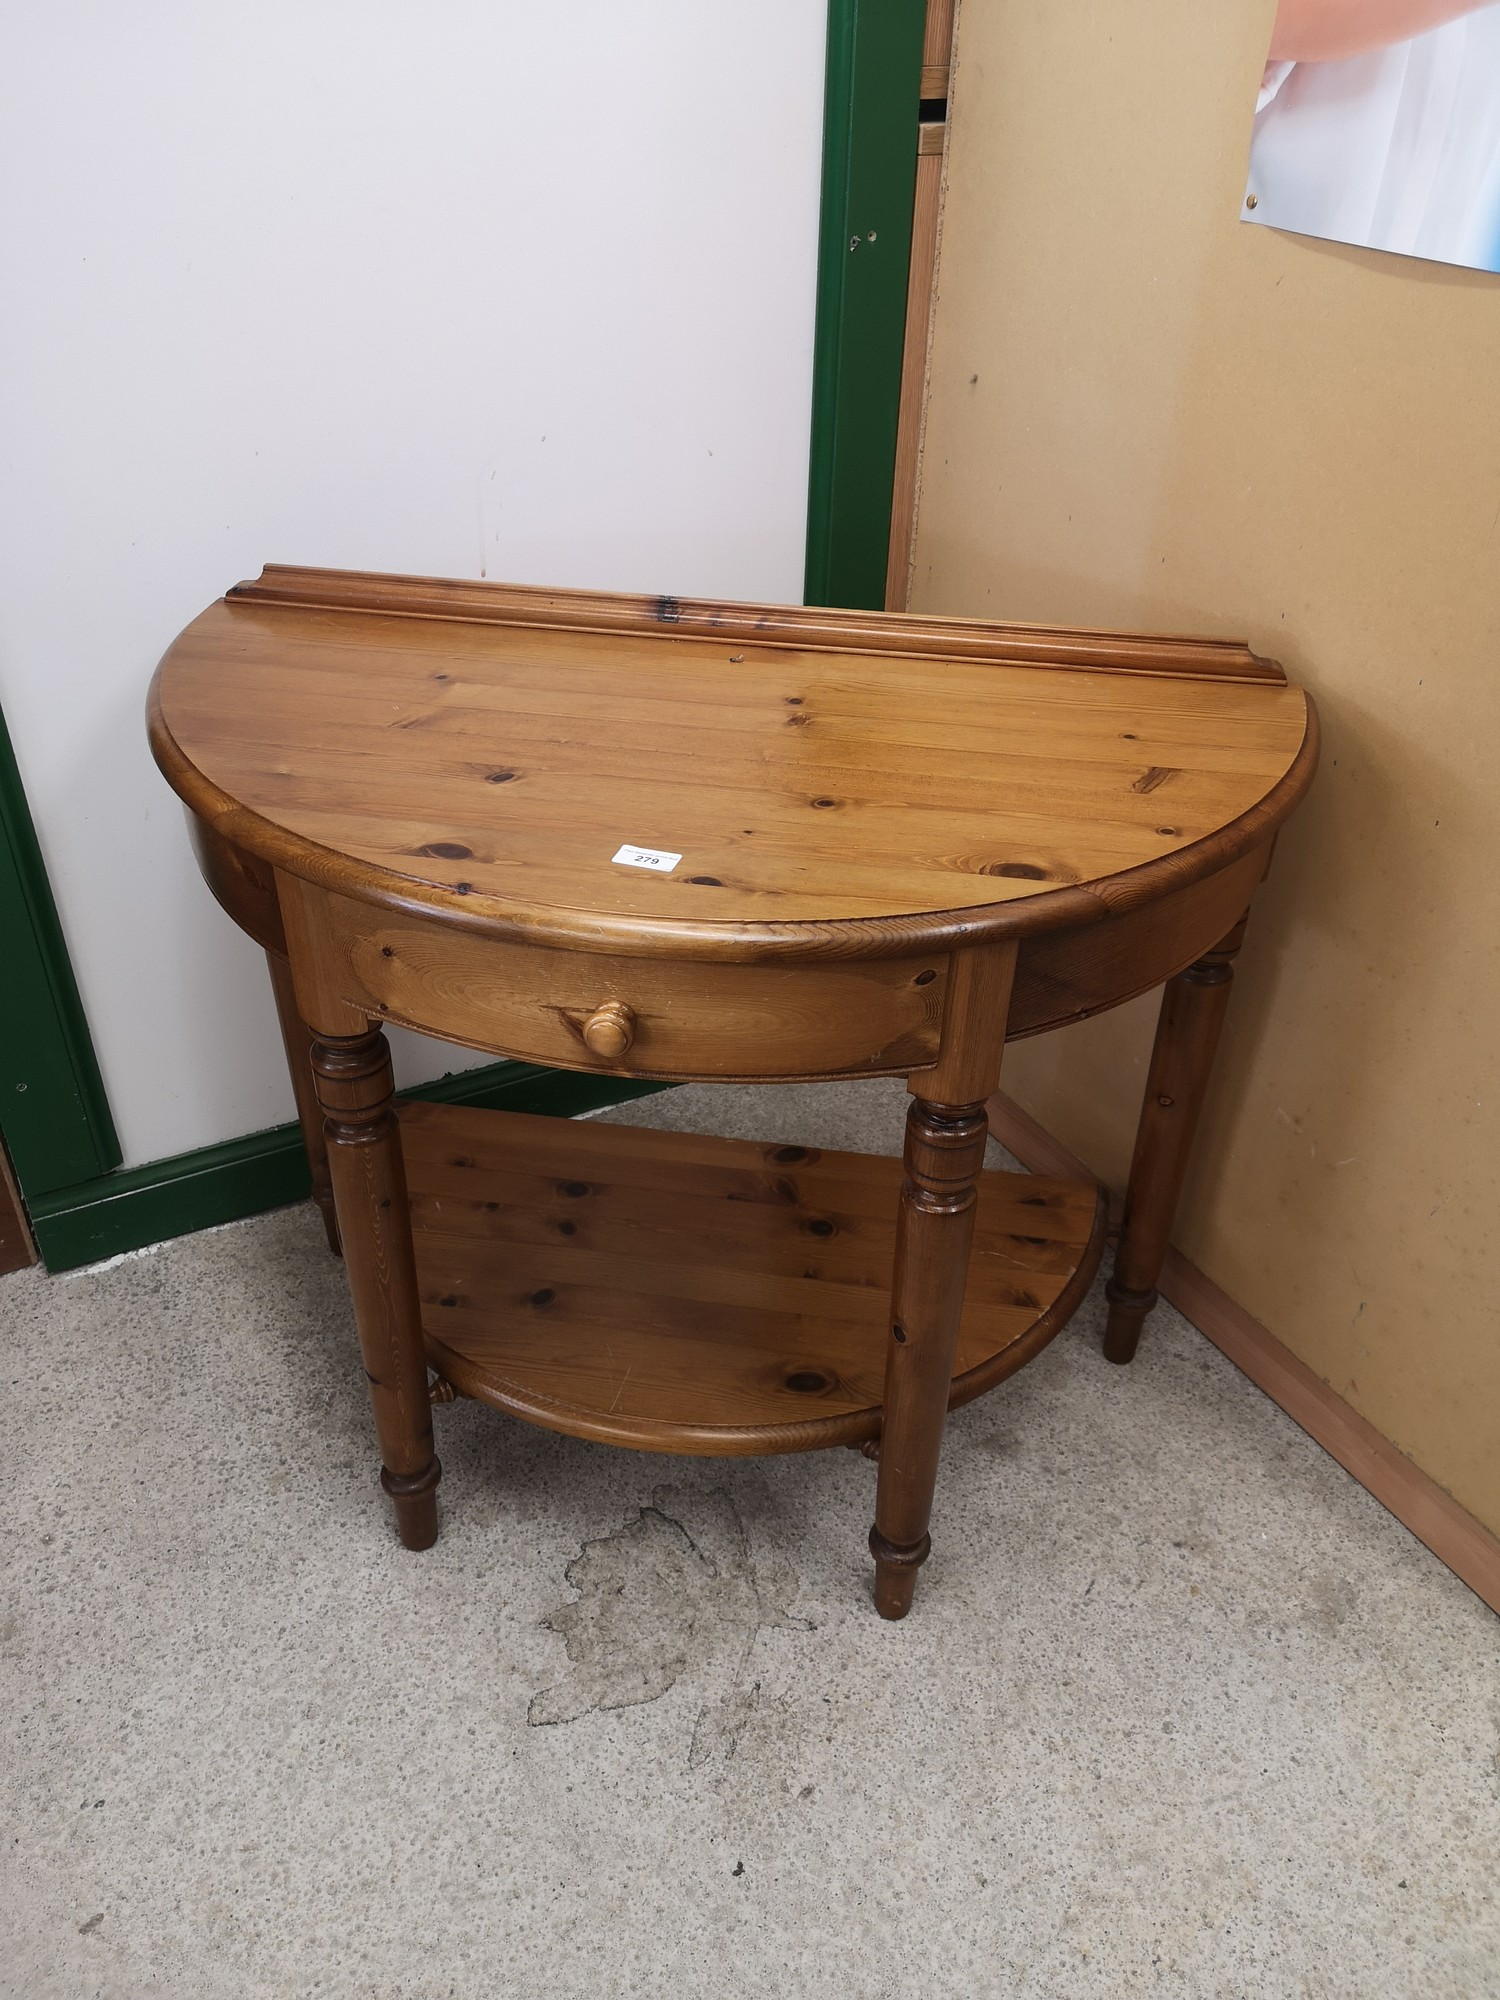 Pine ducal 1 drawer Hall moon console table.